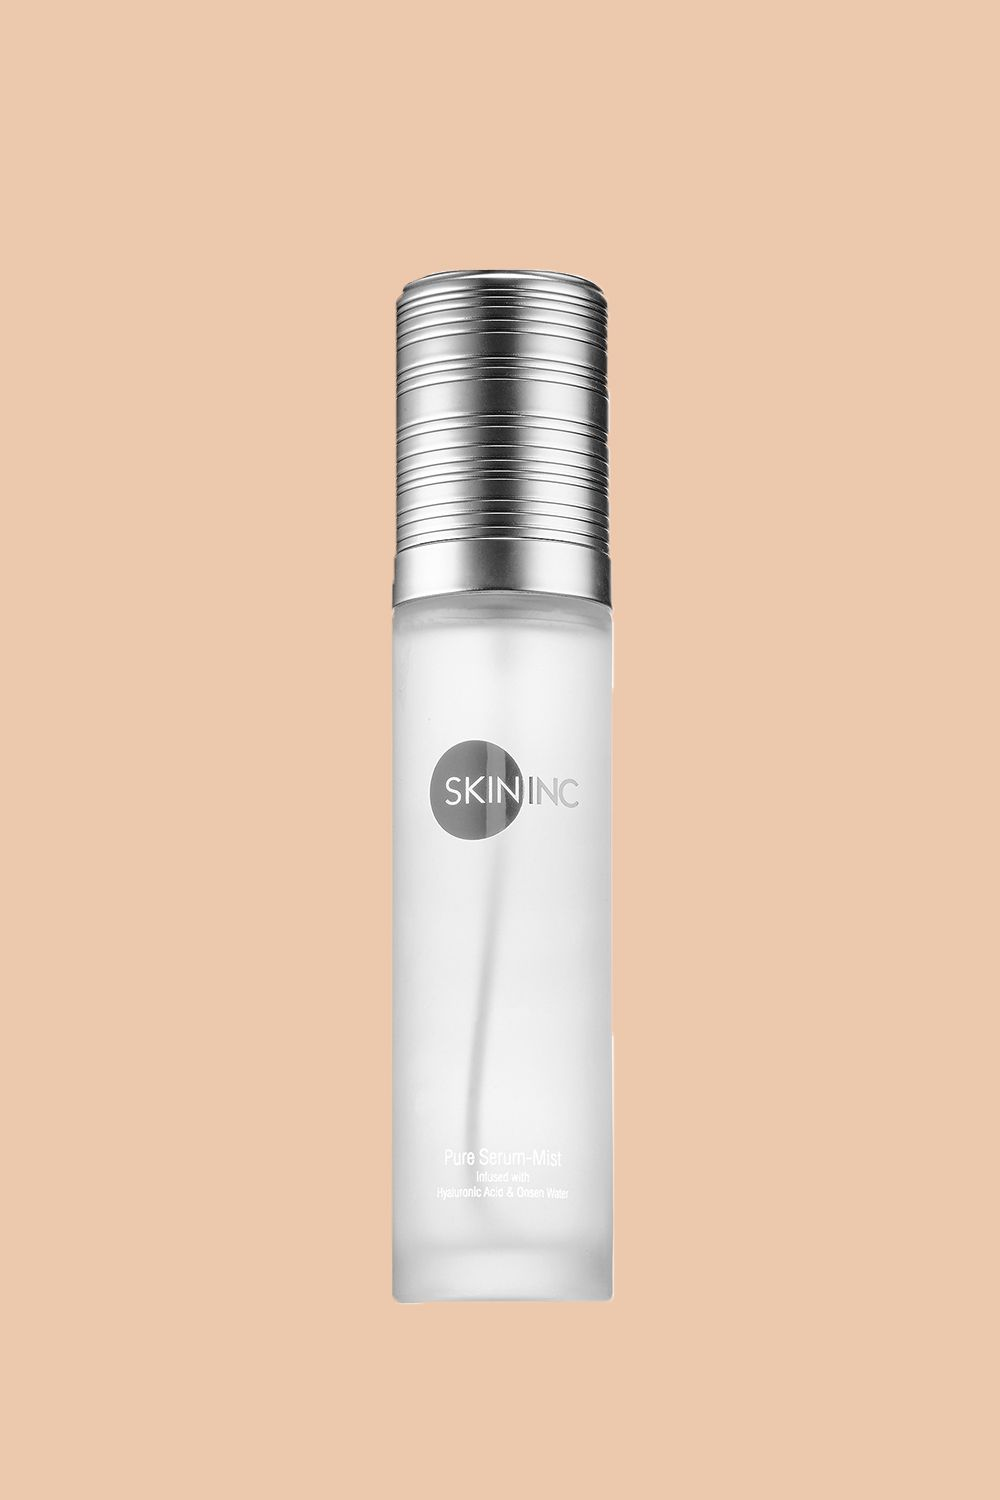 "<p>If your skin is in distress or sensitive by nature, this is the sprayable serum for you. Infused with ultra-lightweight hyaluronic acid and mineral-rich, anti-inflammatory Japanese hot spring Onsen water, it moisturizes and restores the skin's natural lipid barrier for the most easily obtained glow of your life. </p><p><br></p><p>Skin Inc. Pure Serum-Mist<span class=""redactor-invisible-space"" data-verified=""redactor"" data-redactor-tag=""span"" data-redactor-class=""redactor-invisible-space"">, $55; <a href=""http://bit.ly/2cSrKaf"" target=""_blank"">sephora.com</a>.</span><br></p>"